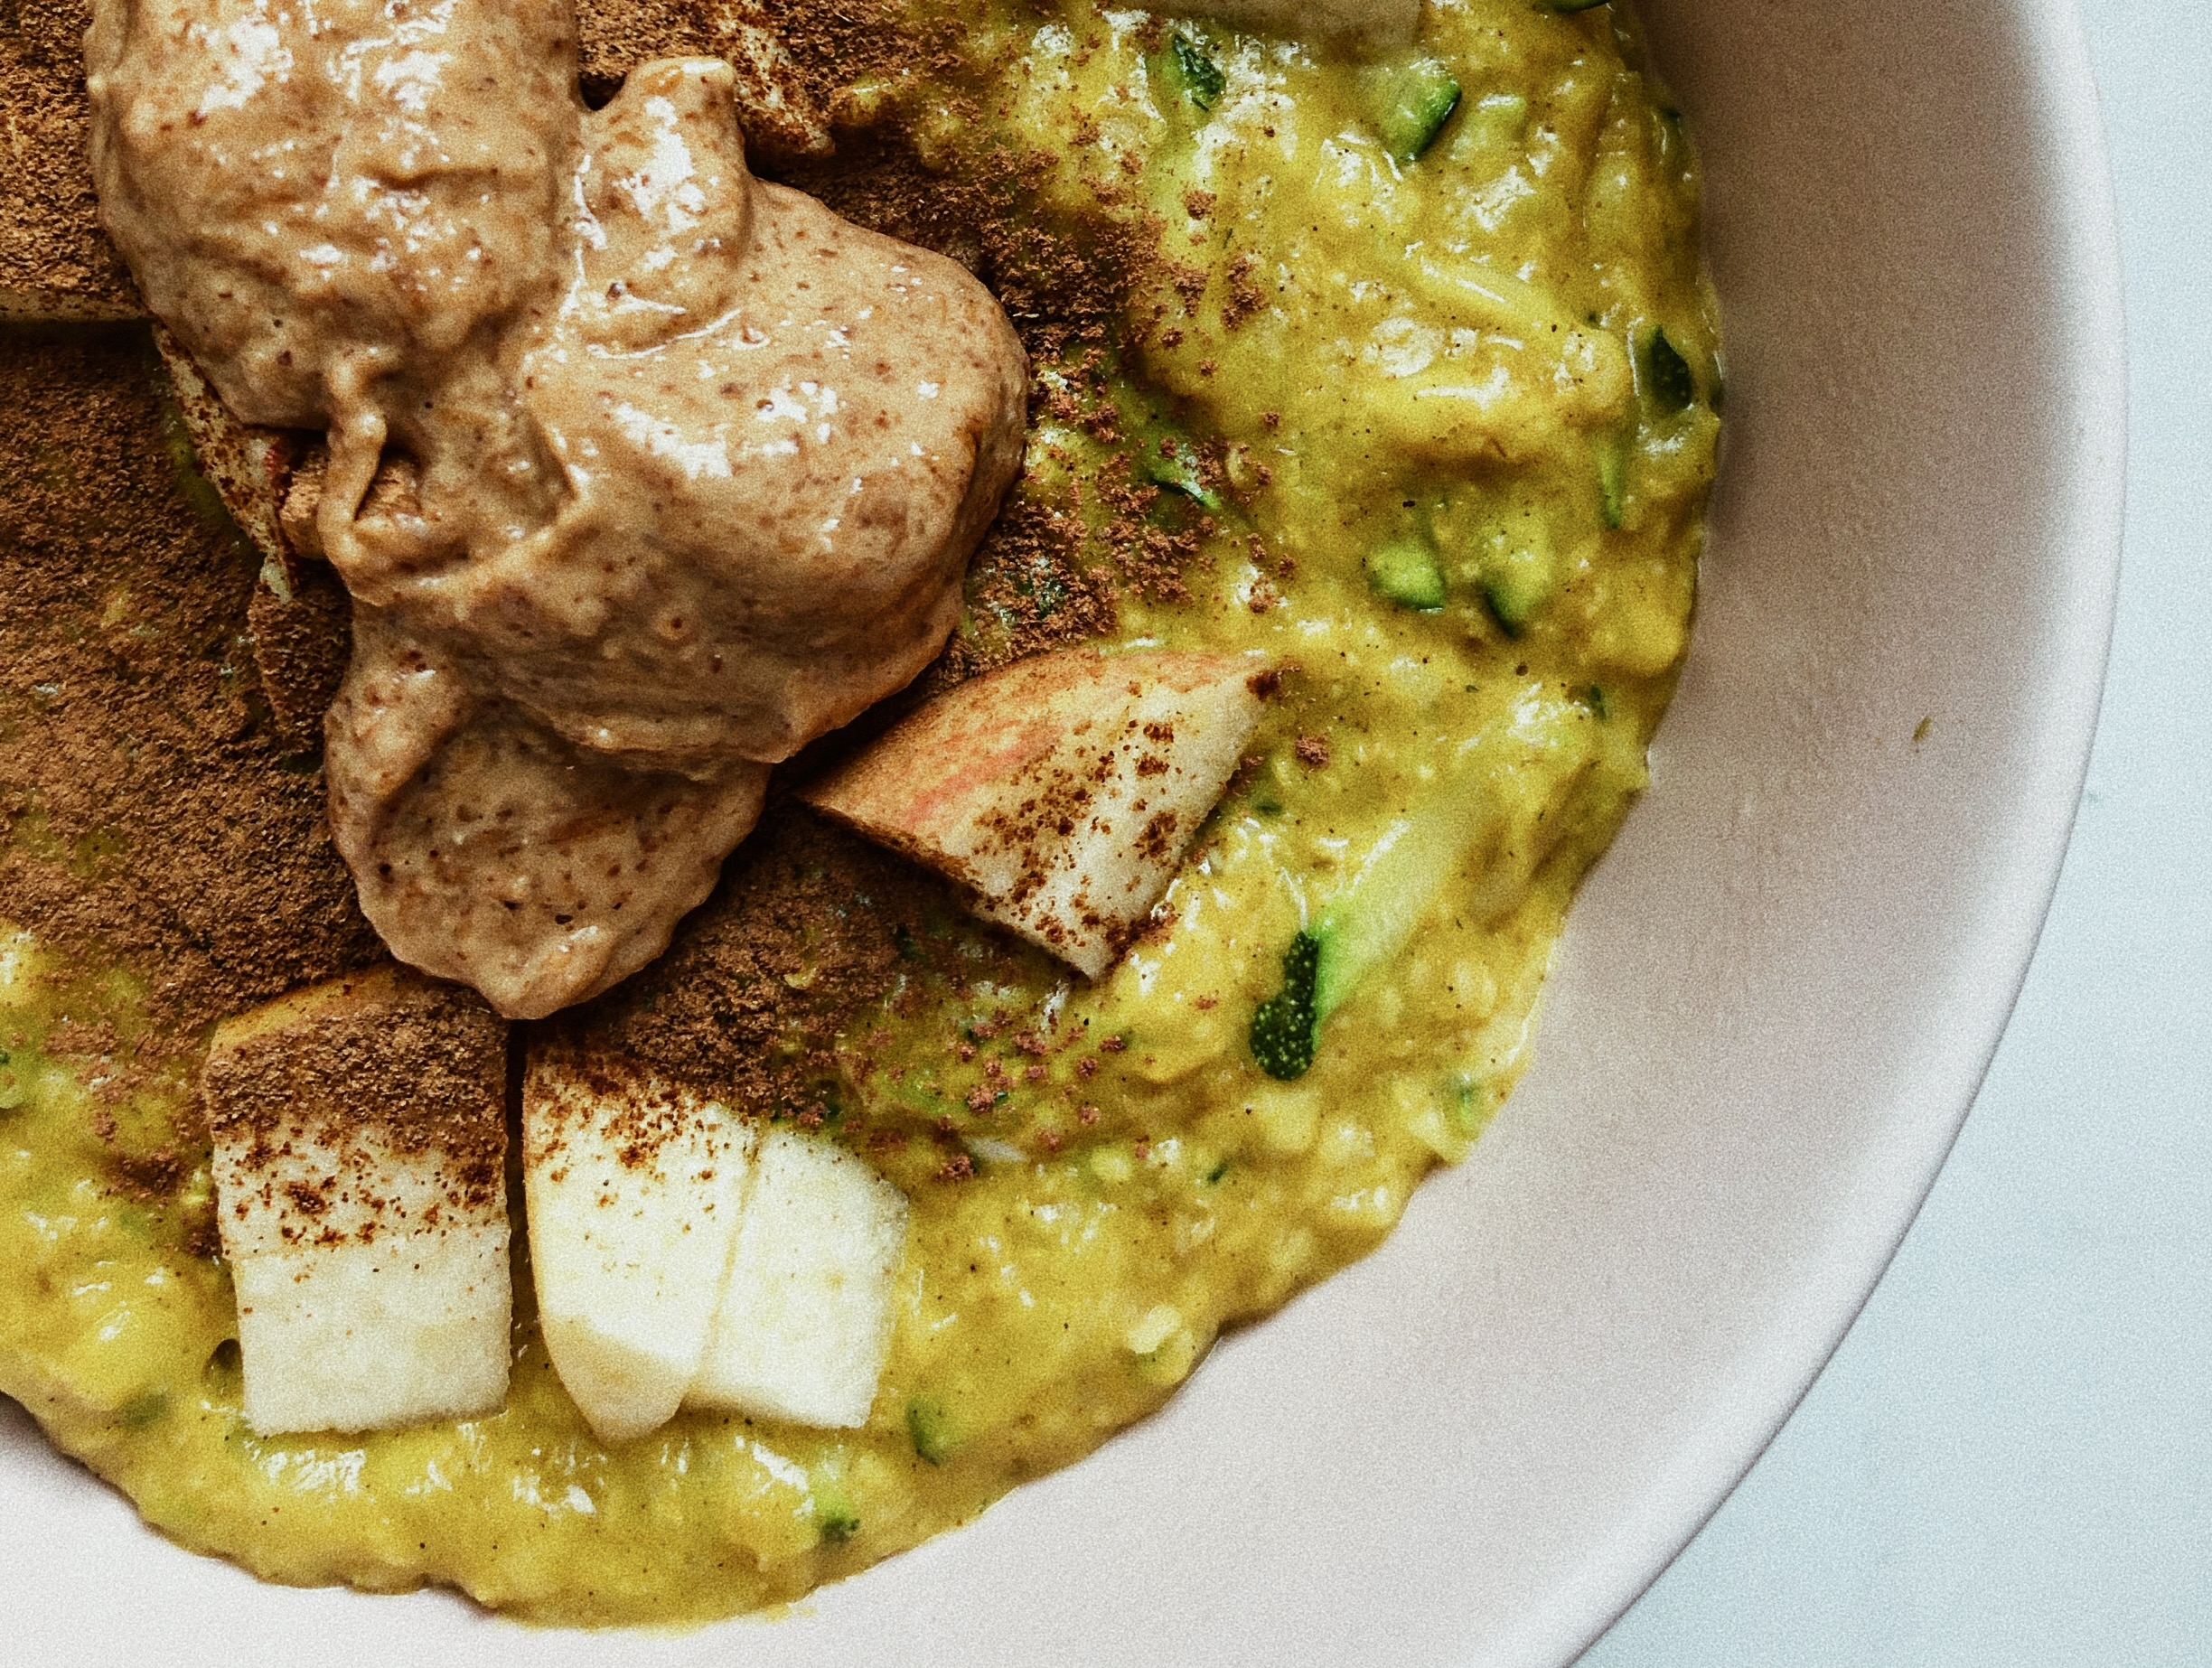 Turmeric Peanut Butter Oatmeal with Zucchini